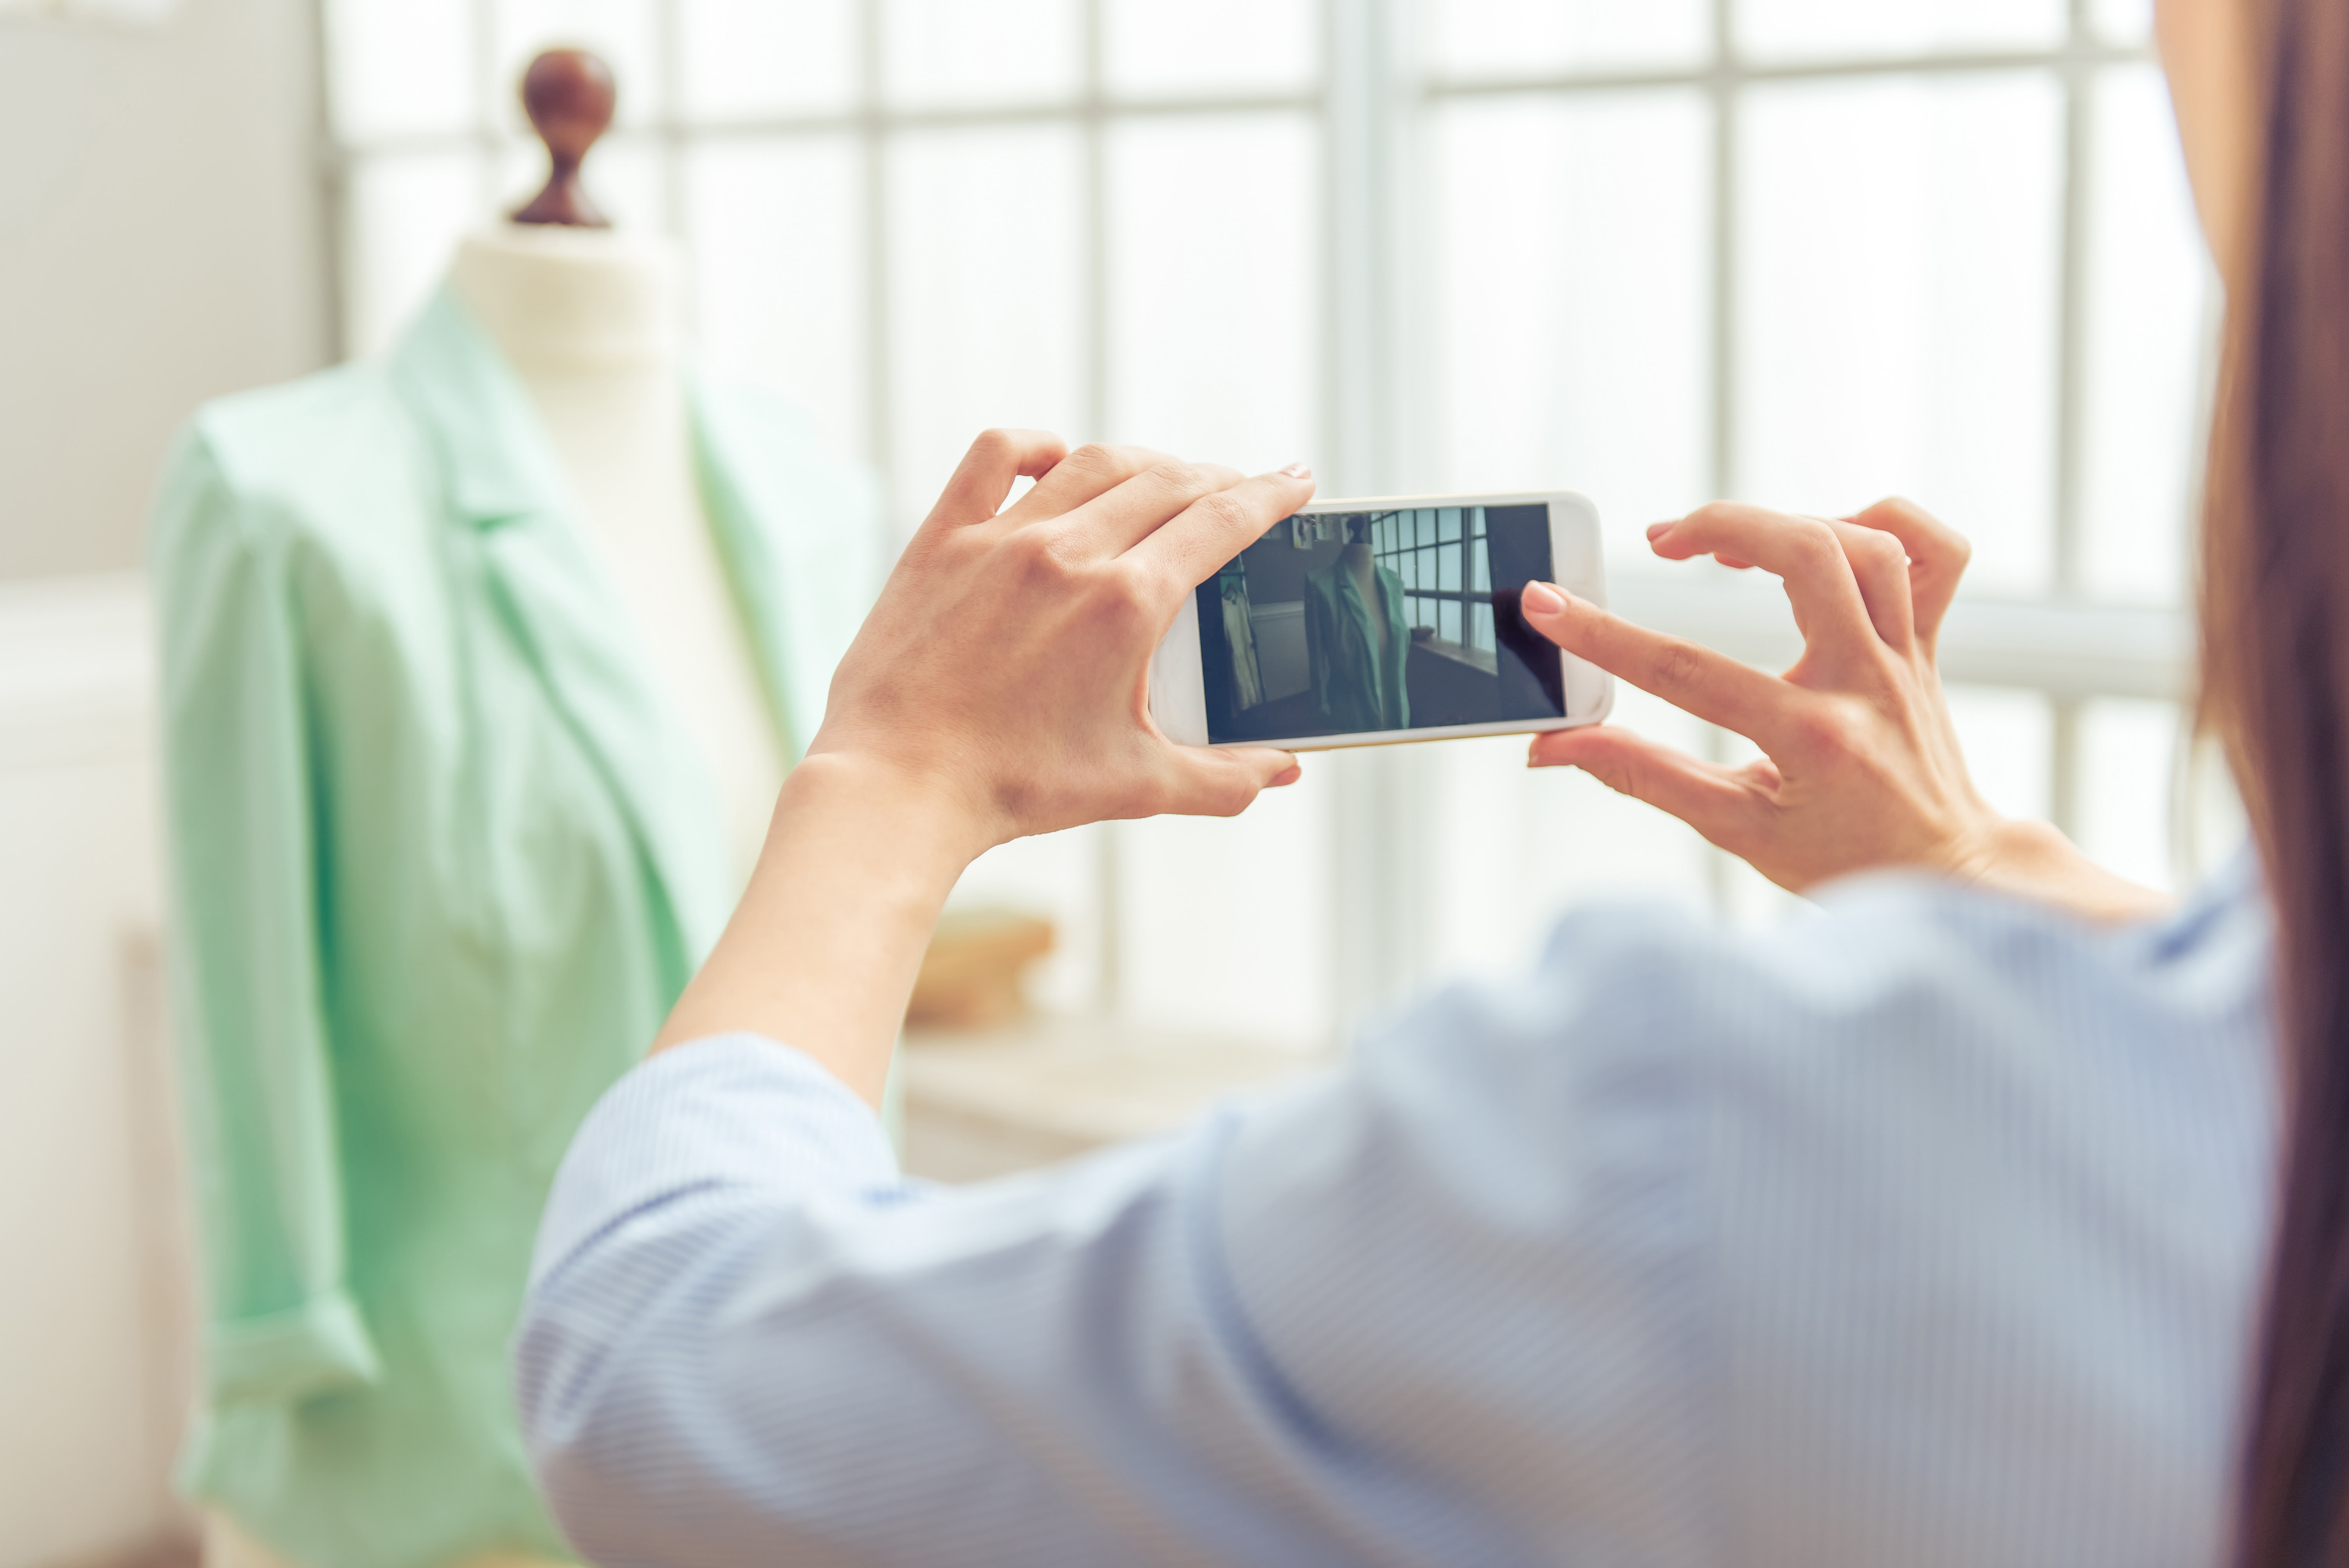 A woman taking a picture of a green blazer